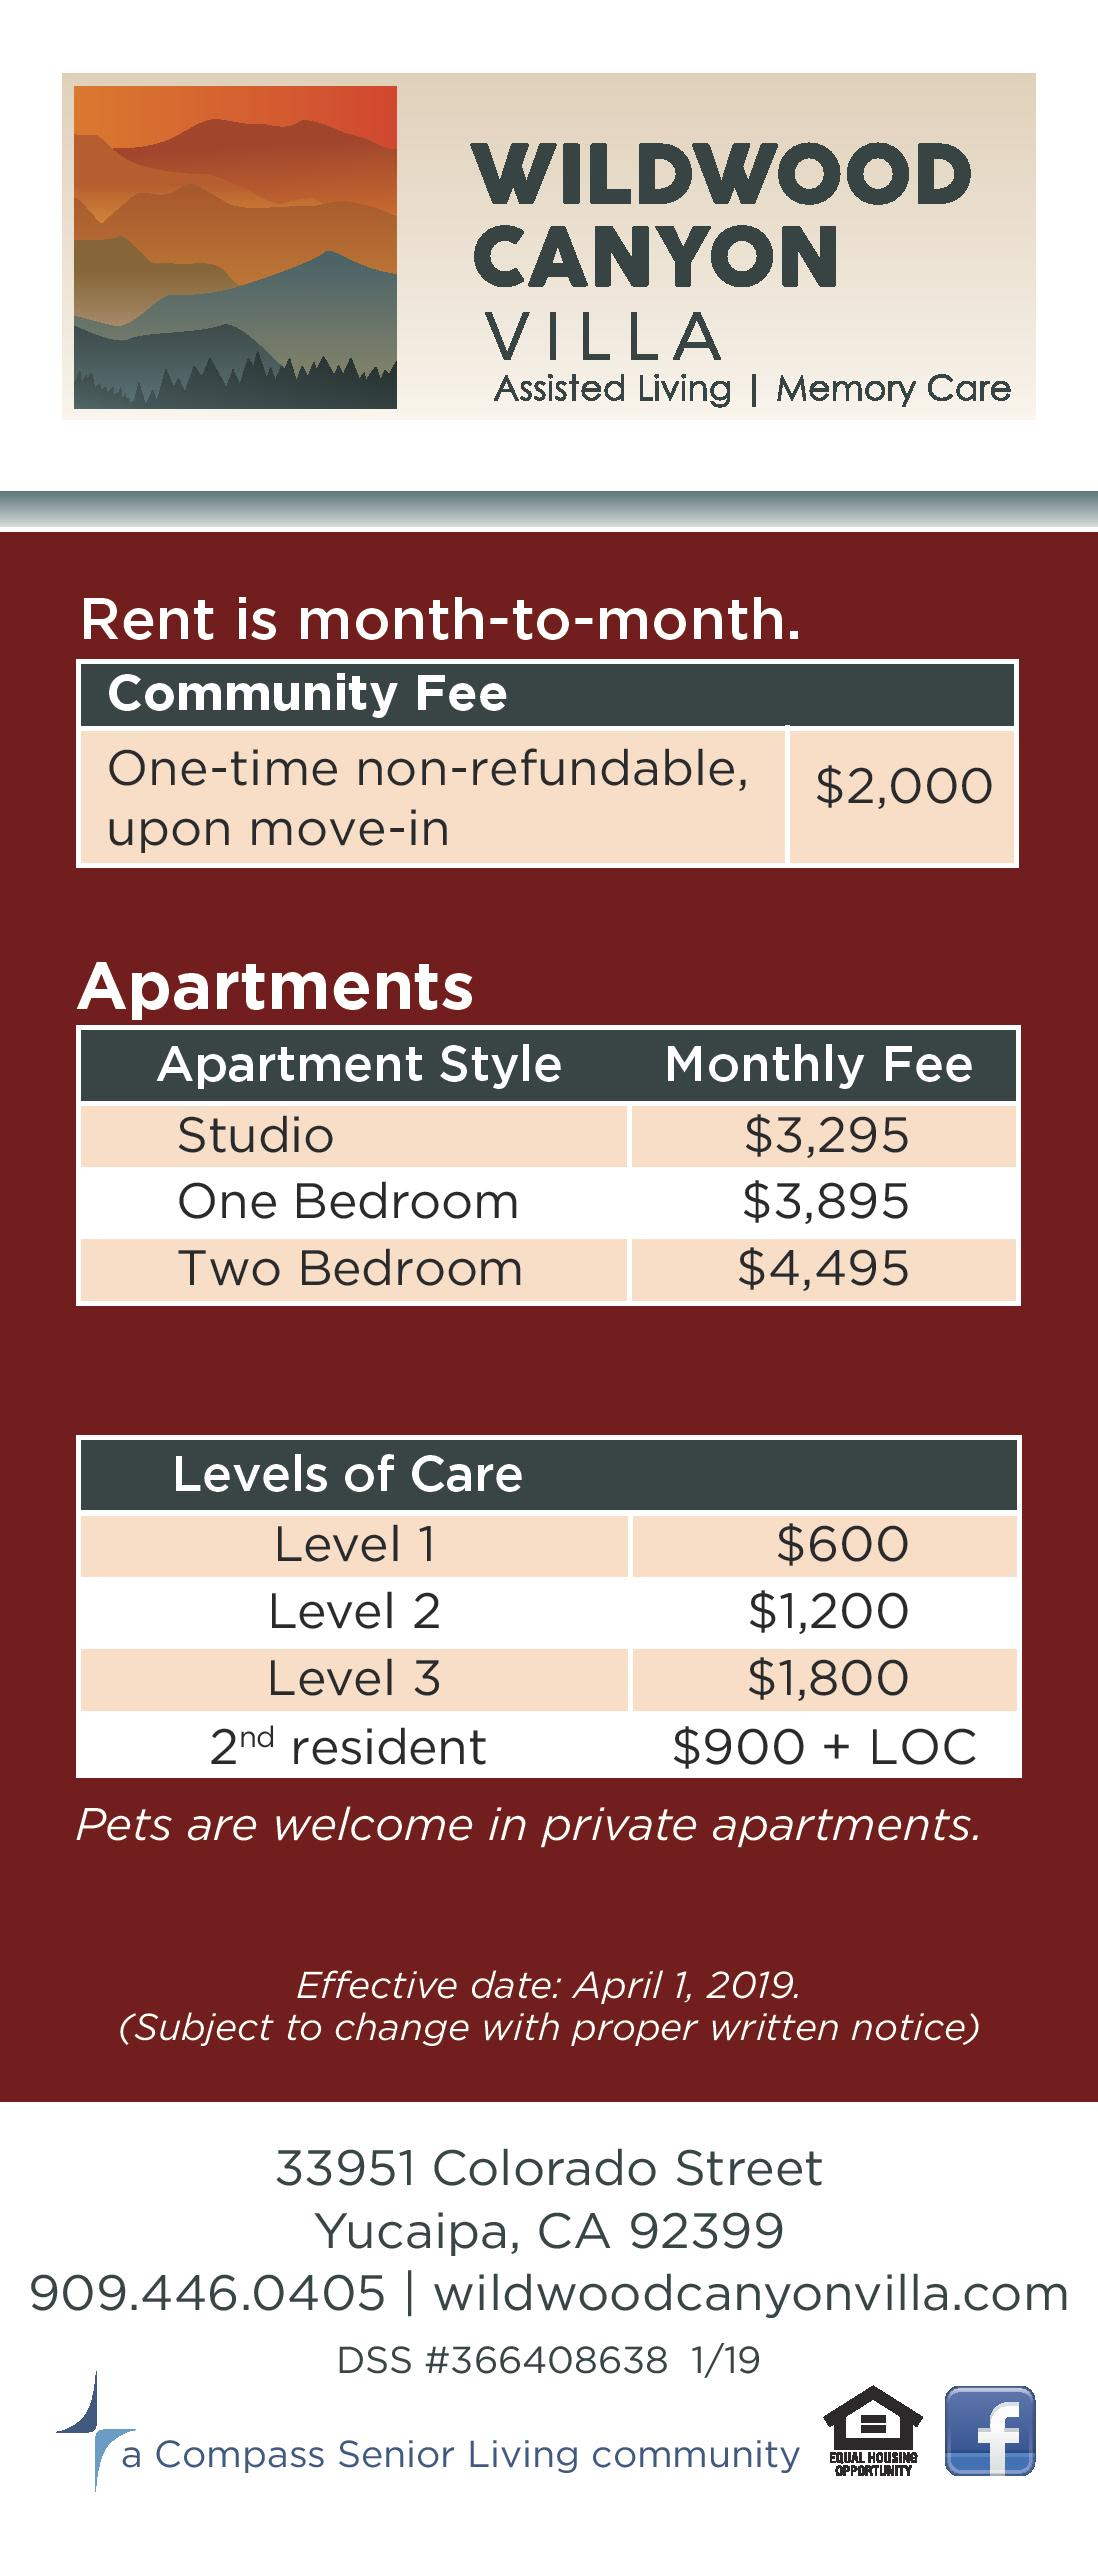 Assisted living rates at Wildwood Canyon Villa Assisted Living and Memory Care in Yucaipa, California